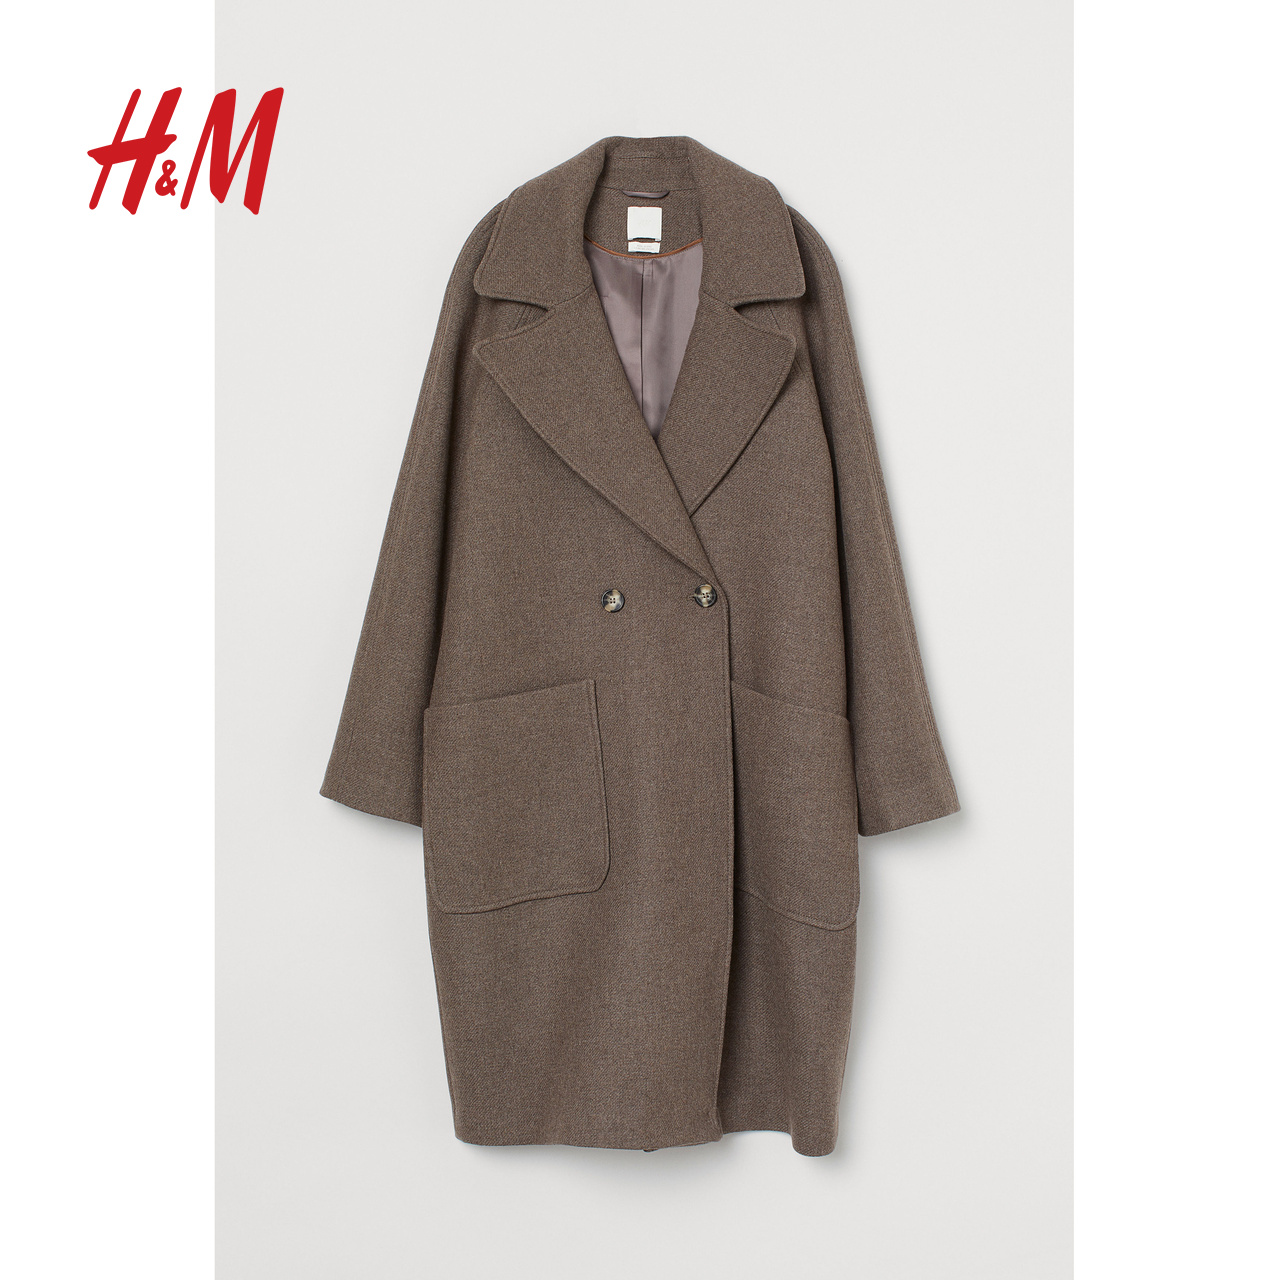 HM women's clothing autumn and winter 2019 temperament wool coat women's medium and long woolen cloth coat women's 0786743